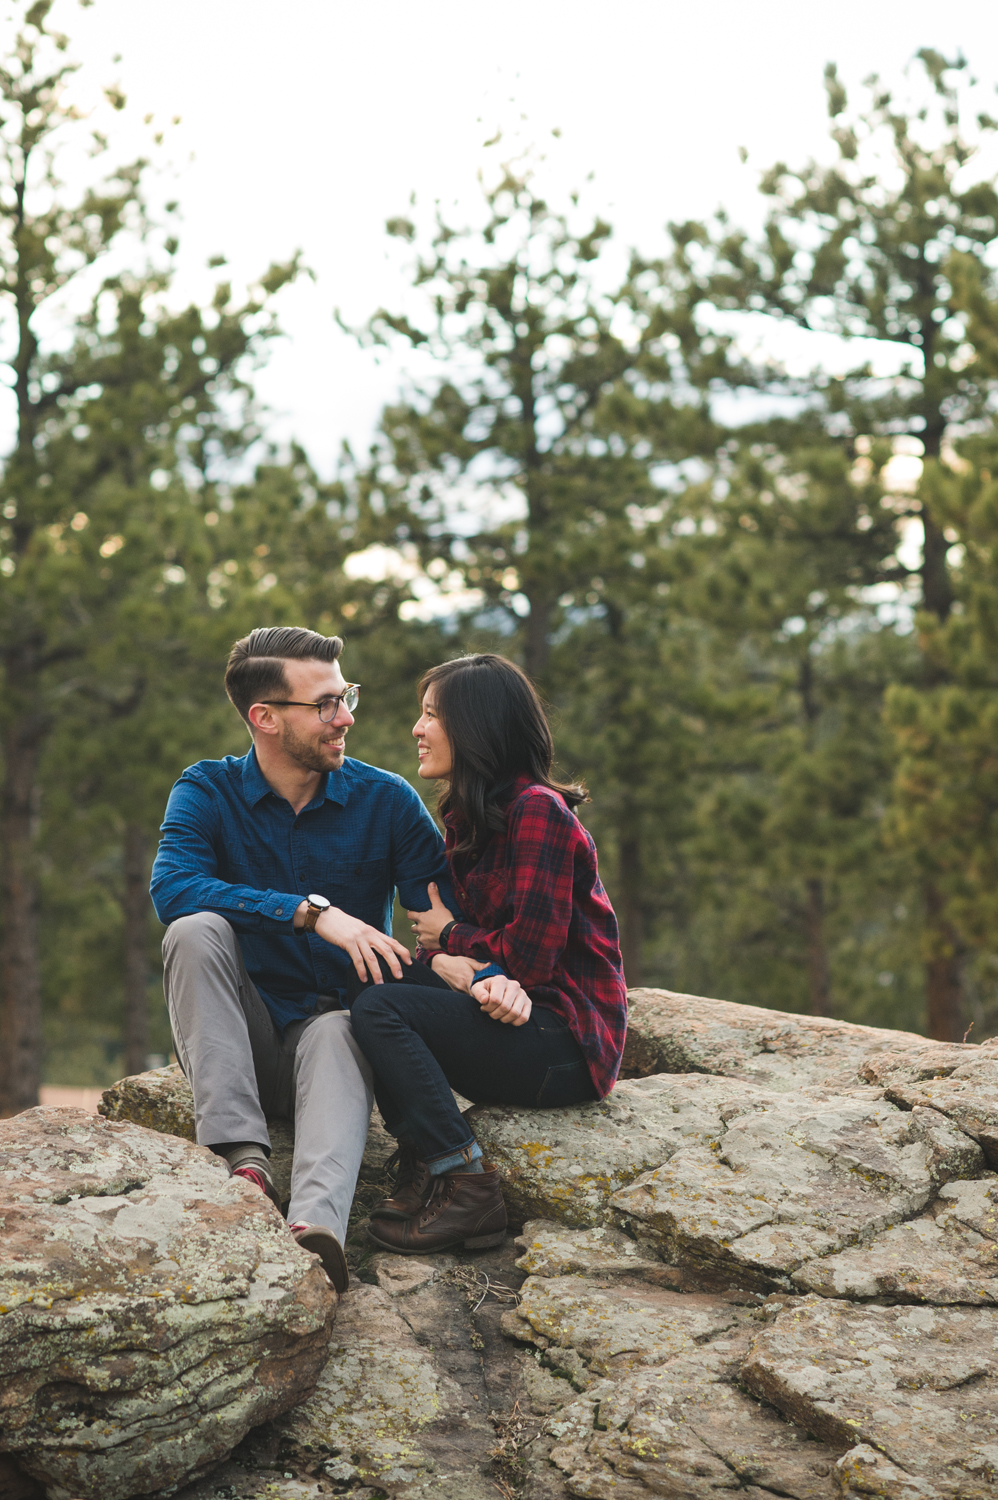 TiffanyandMark_Engaged_1012_squarespace.jpg